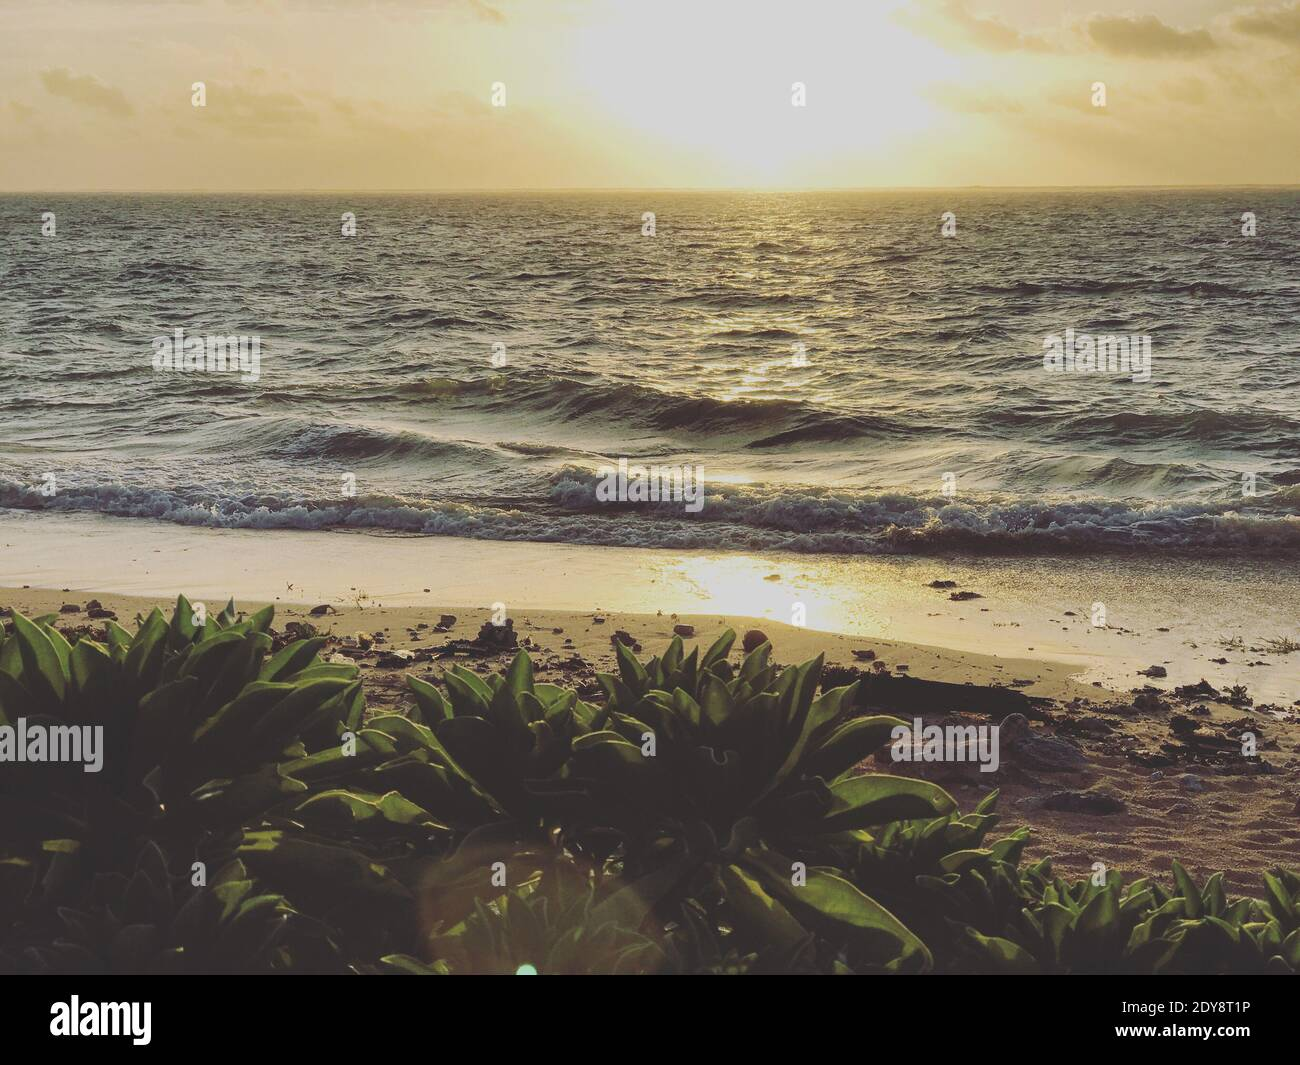 Scenic View Of Sea Against Sky During Sunset Stock Photo